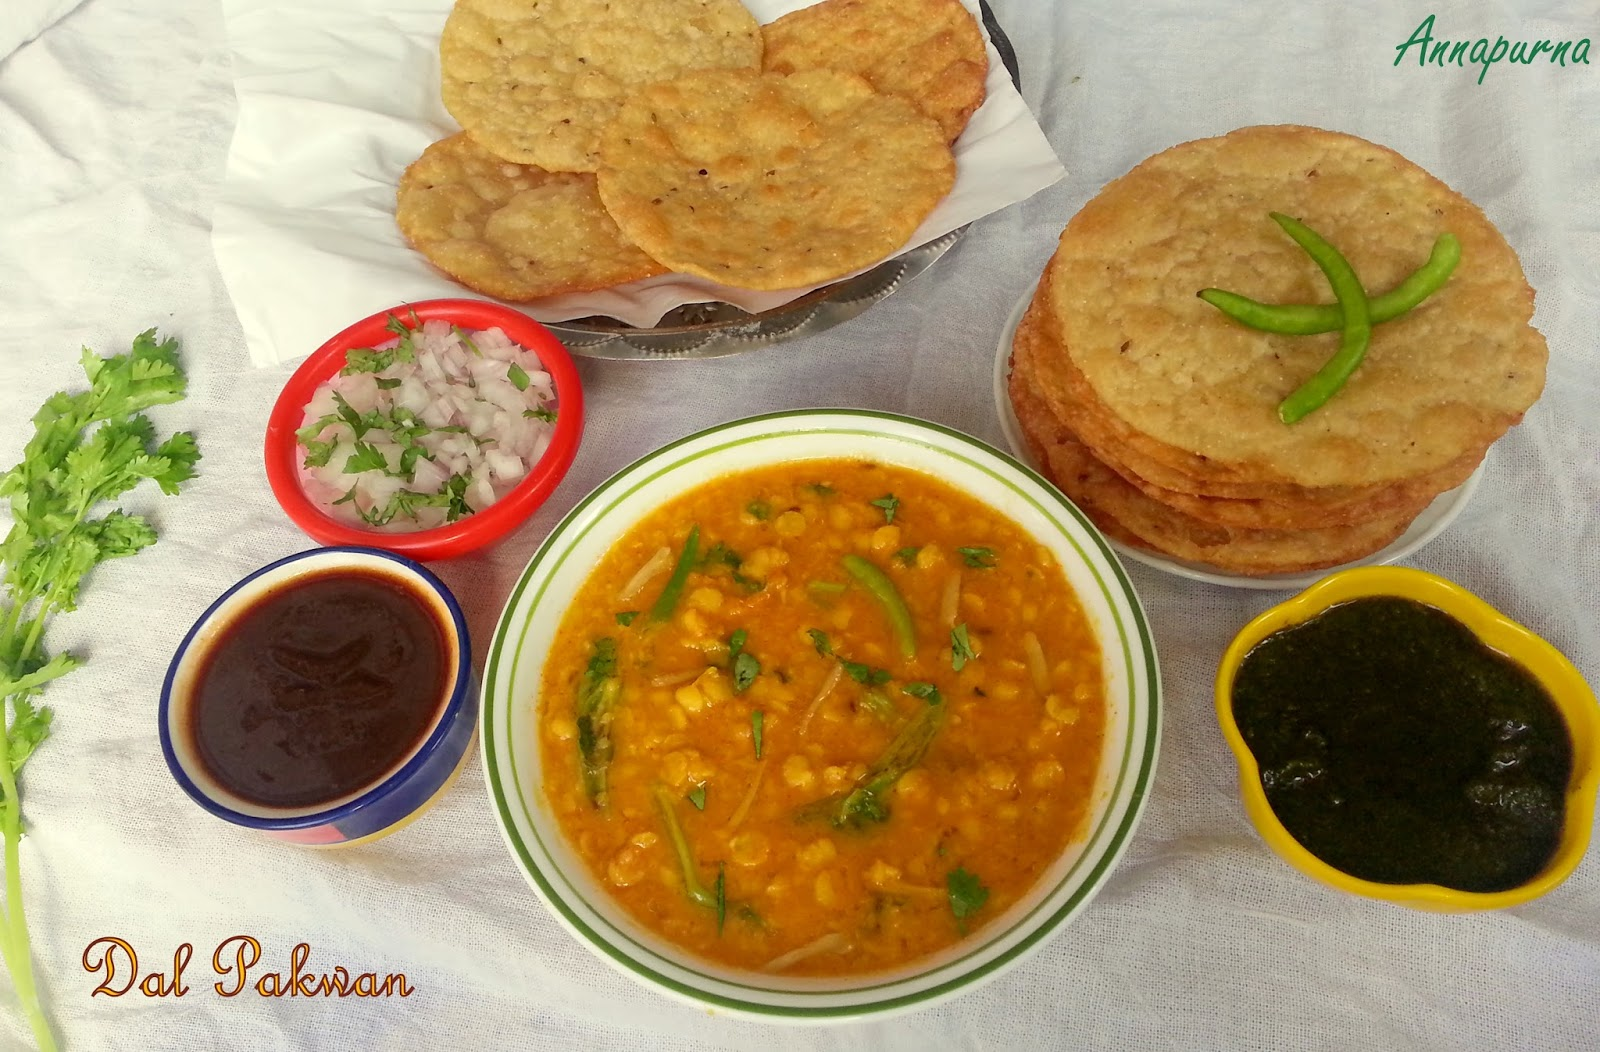 Annapurna dal pakwan sindhi breakfast recipe for Annapurna indian cuisine